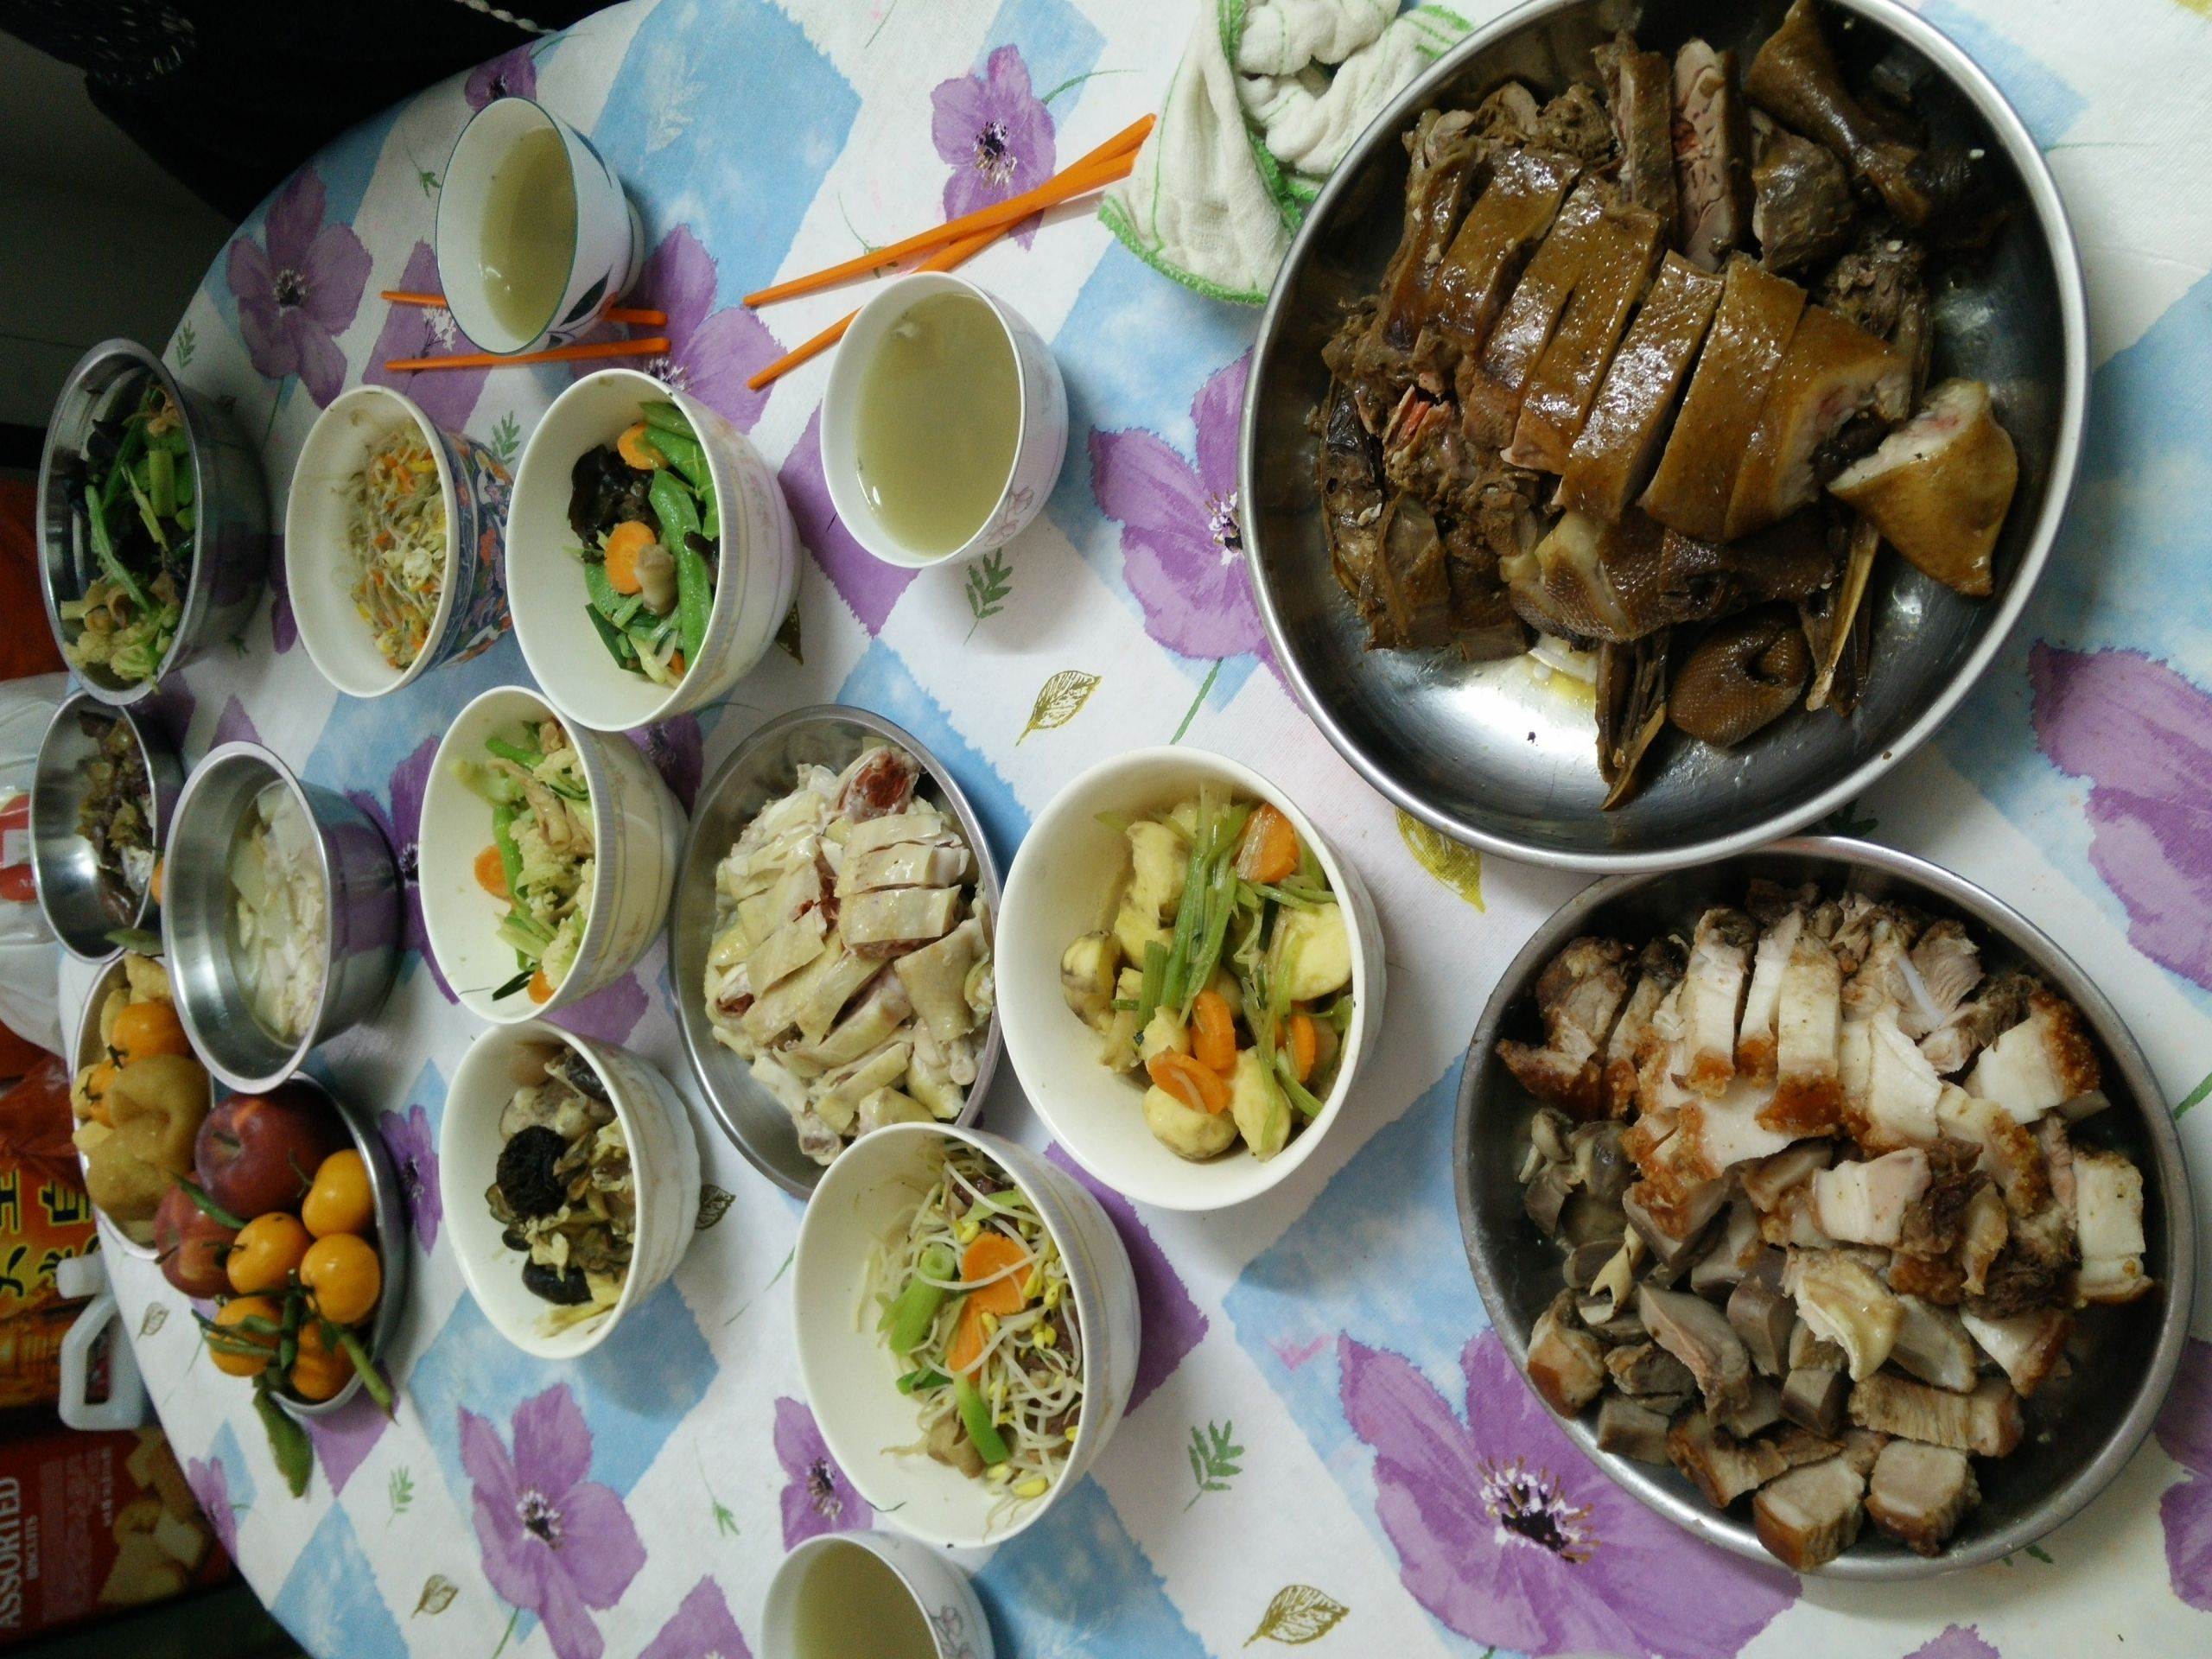 Chinese New Year Dinner  Traveling In China During Chinese New Year s Pros and